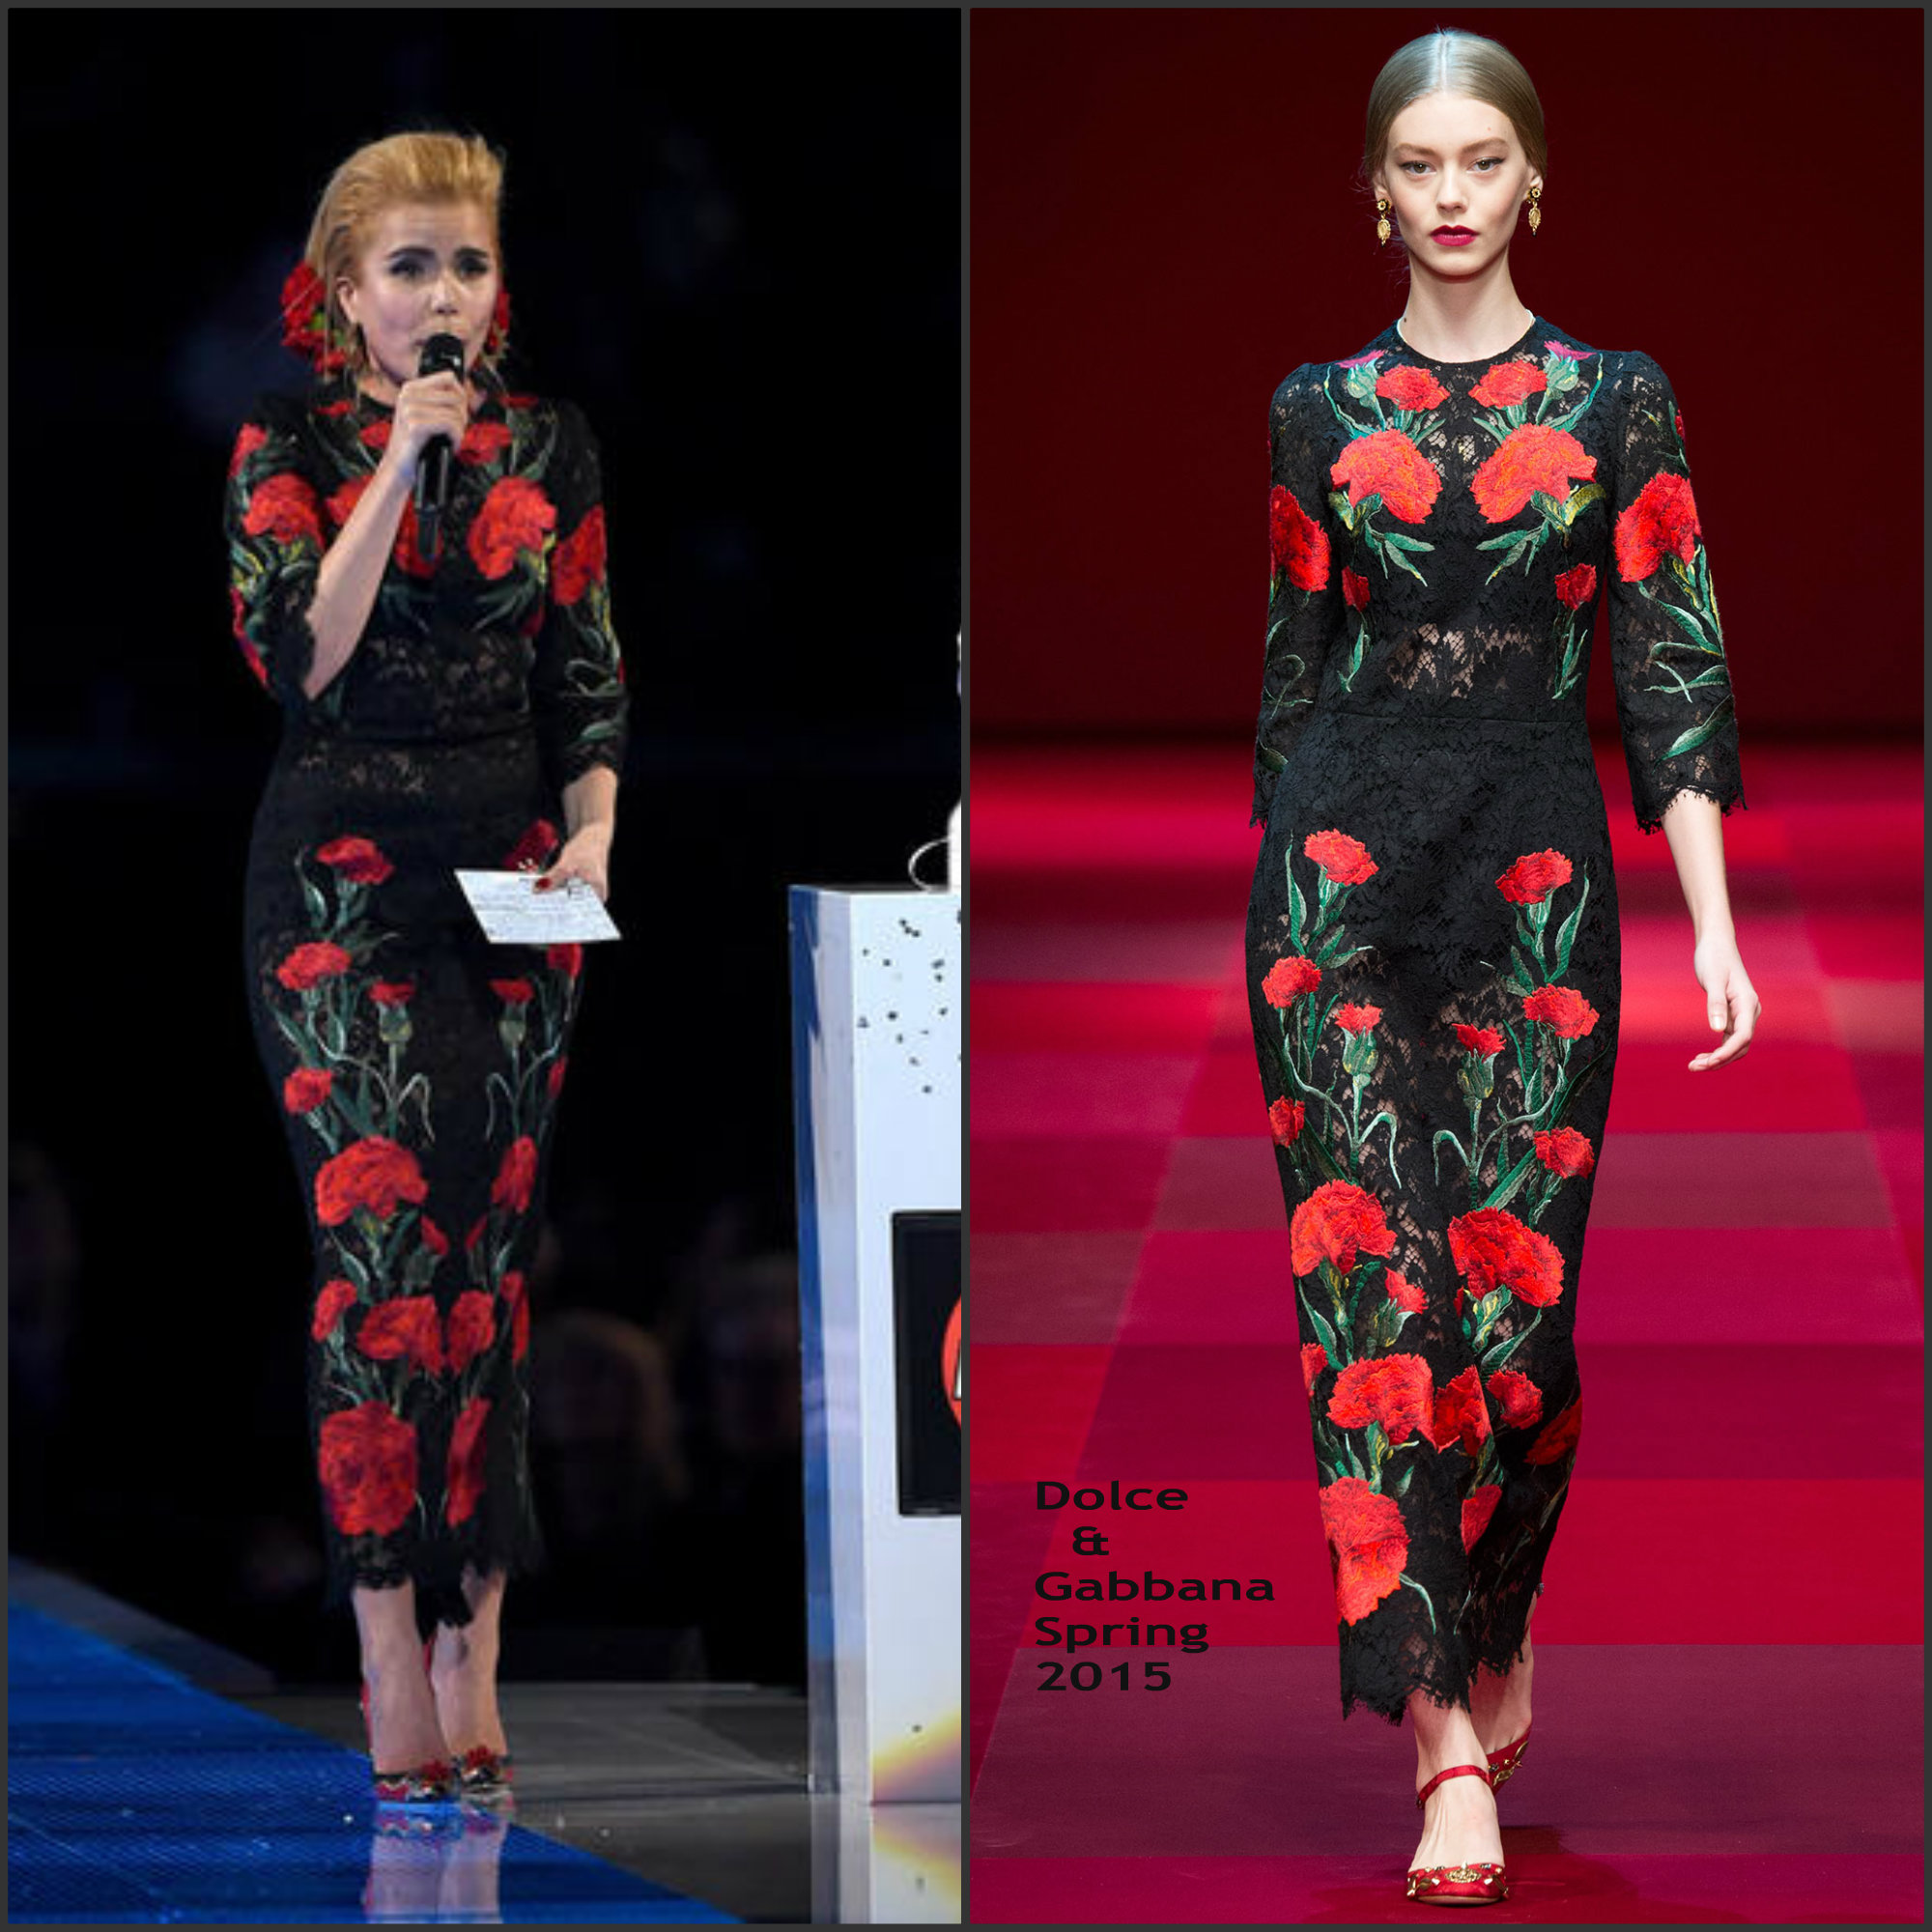 Paloma-Faith-in-Dolce-&-Gabbana-at-the-2015-Brit-Awards